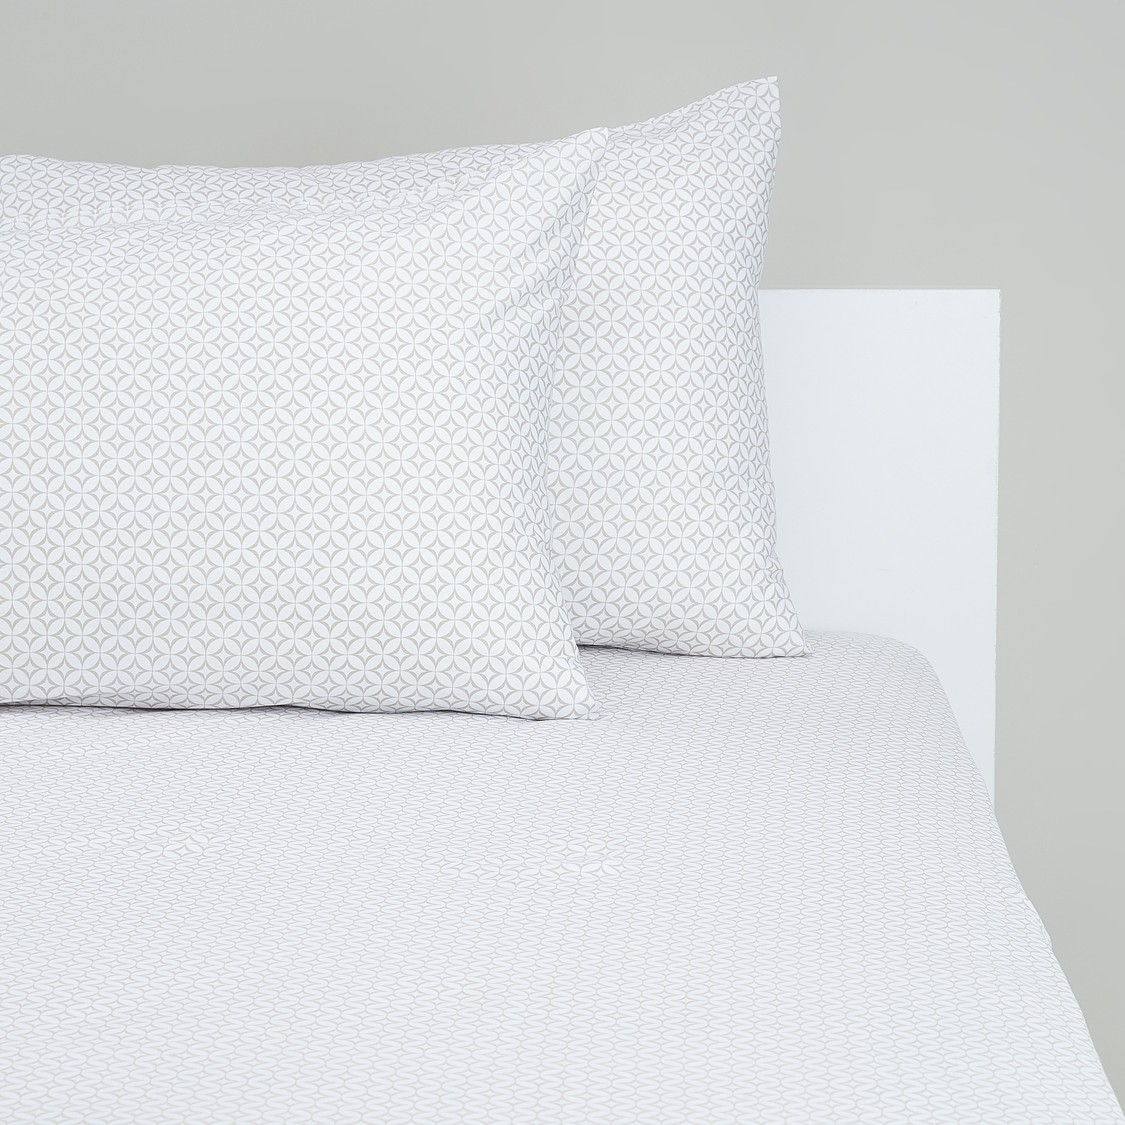 Printed Queen Fitted Sheet with Elasticised Hem - 200x150 cms